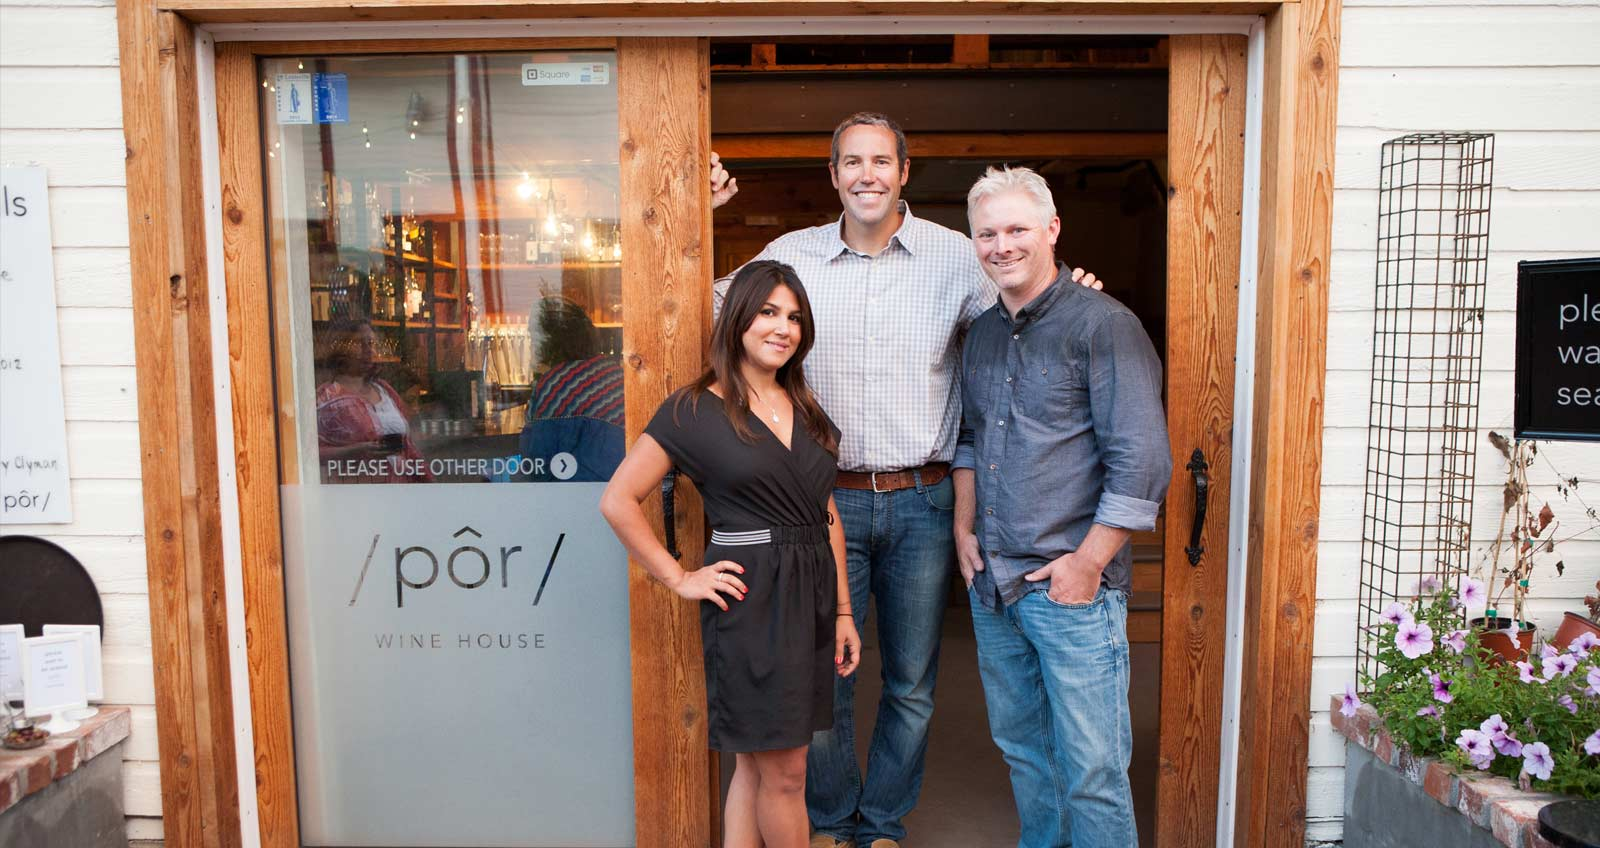 Featured Business: /por/ wine house